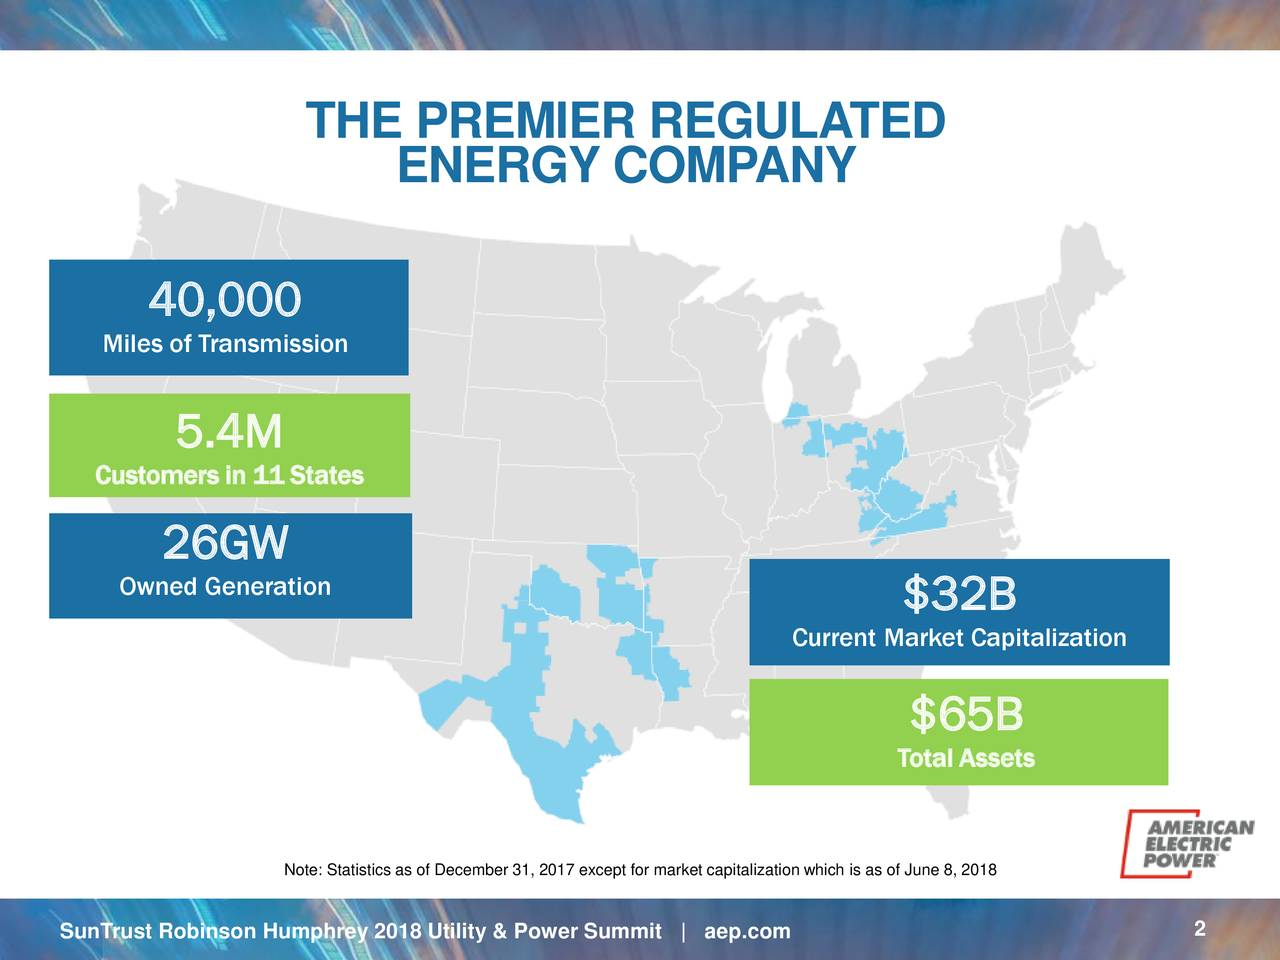 AMERICA'S EAMERICA'S ENERGY PARTNER 40,000 Miles of Transmission 5.4M Customers in 11 States 26GW Owned Generation $32B Current Market Capitalization $65B Total Assets Note: Statistics as of December 31, 2017 except for market capitalization which is as of June 8, 2018 SunTrust Robinson Humphrey 2018 Utility & Power Summit   aep.com